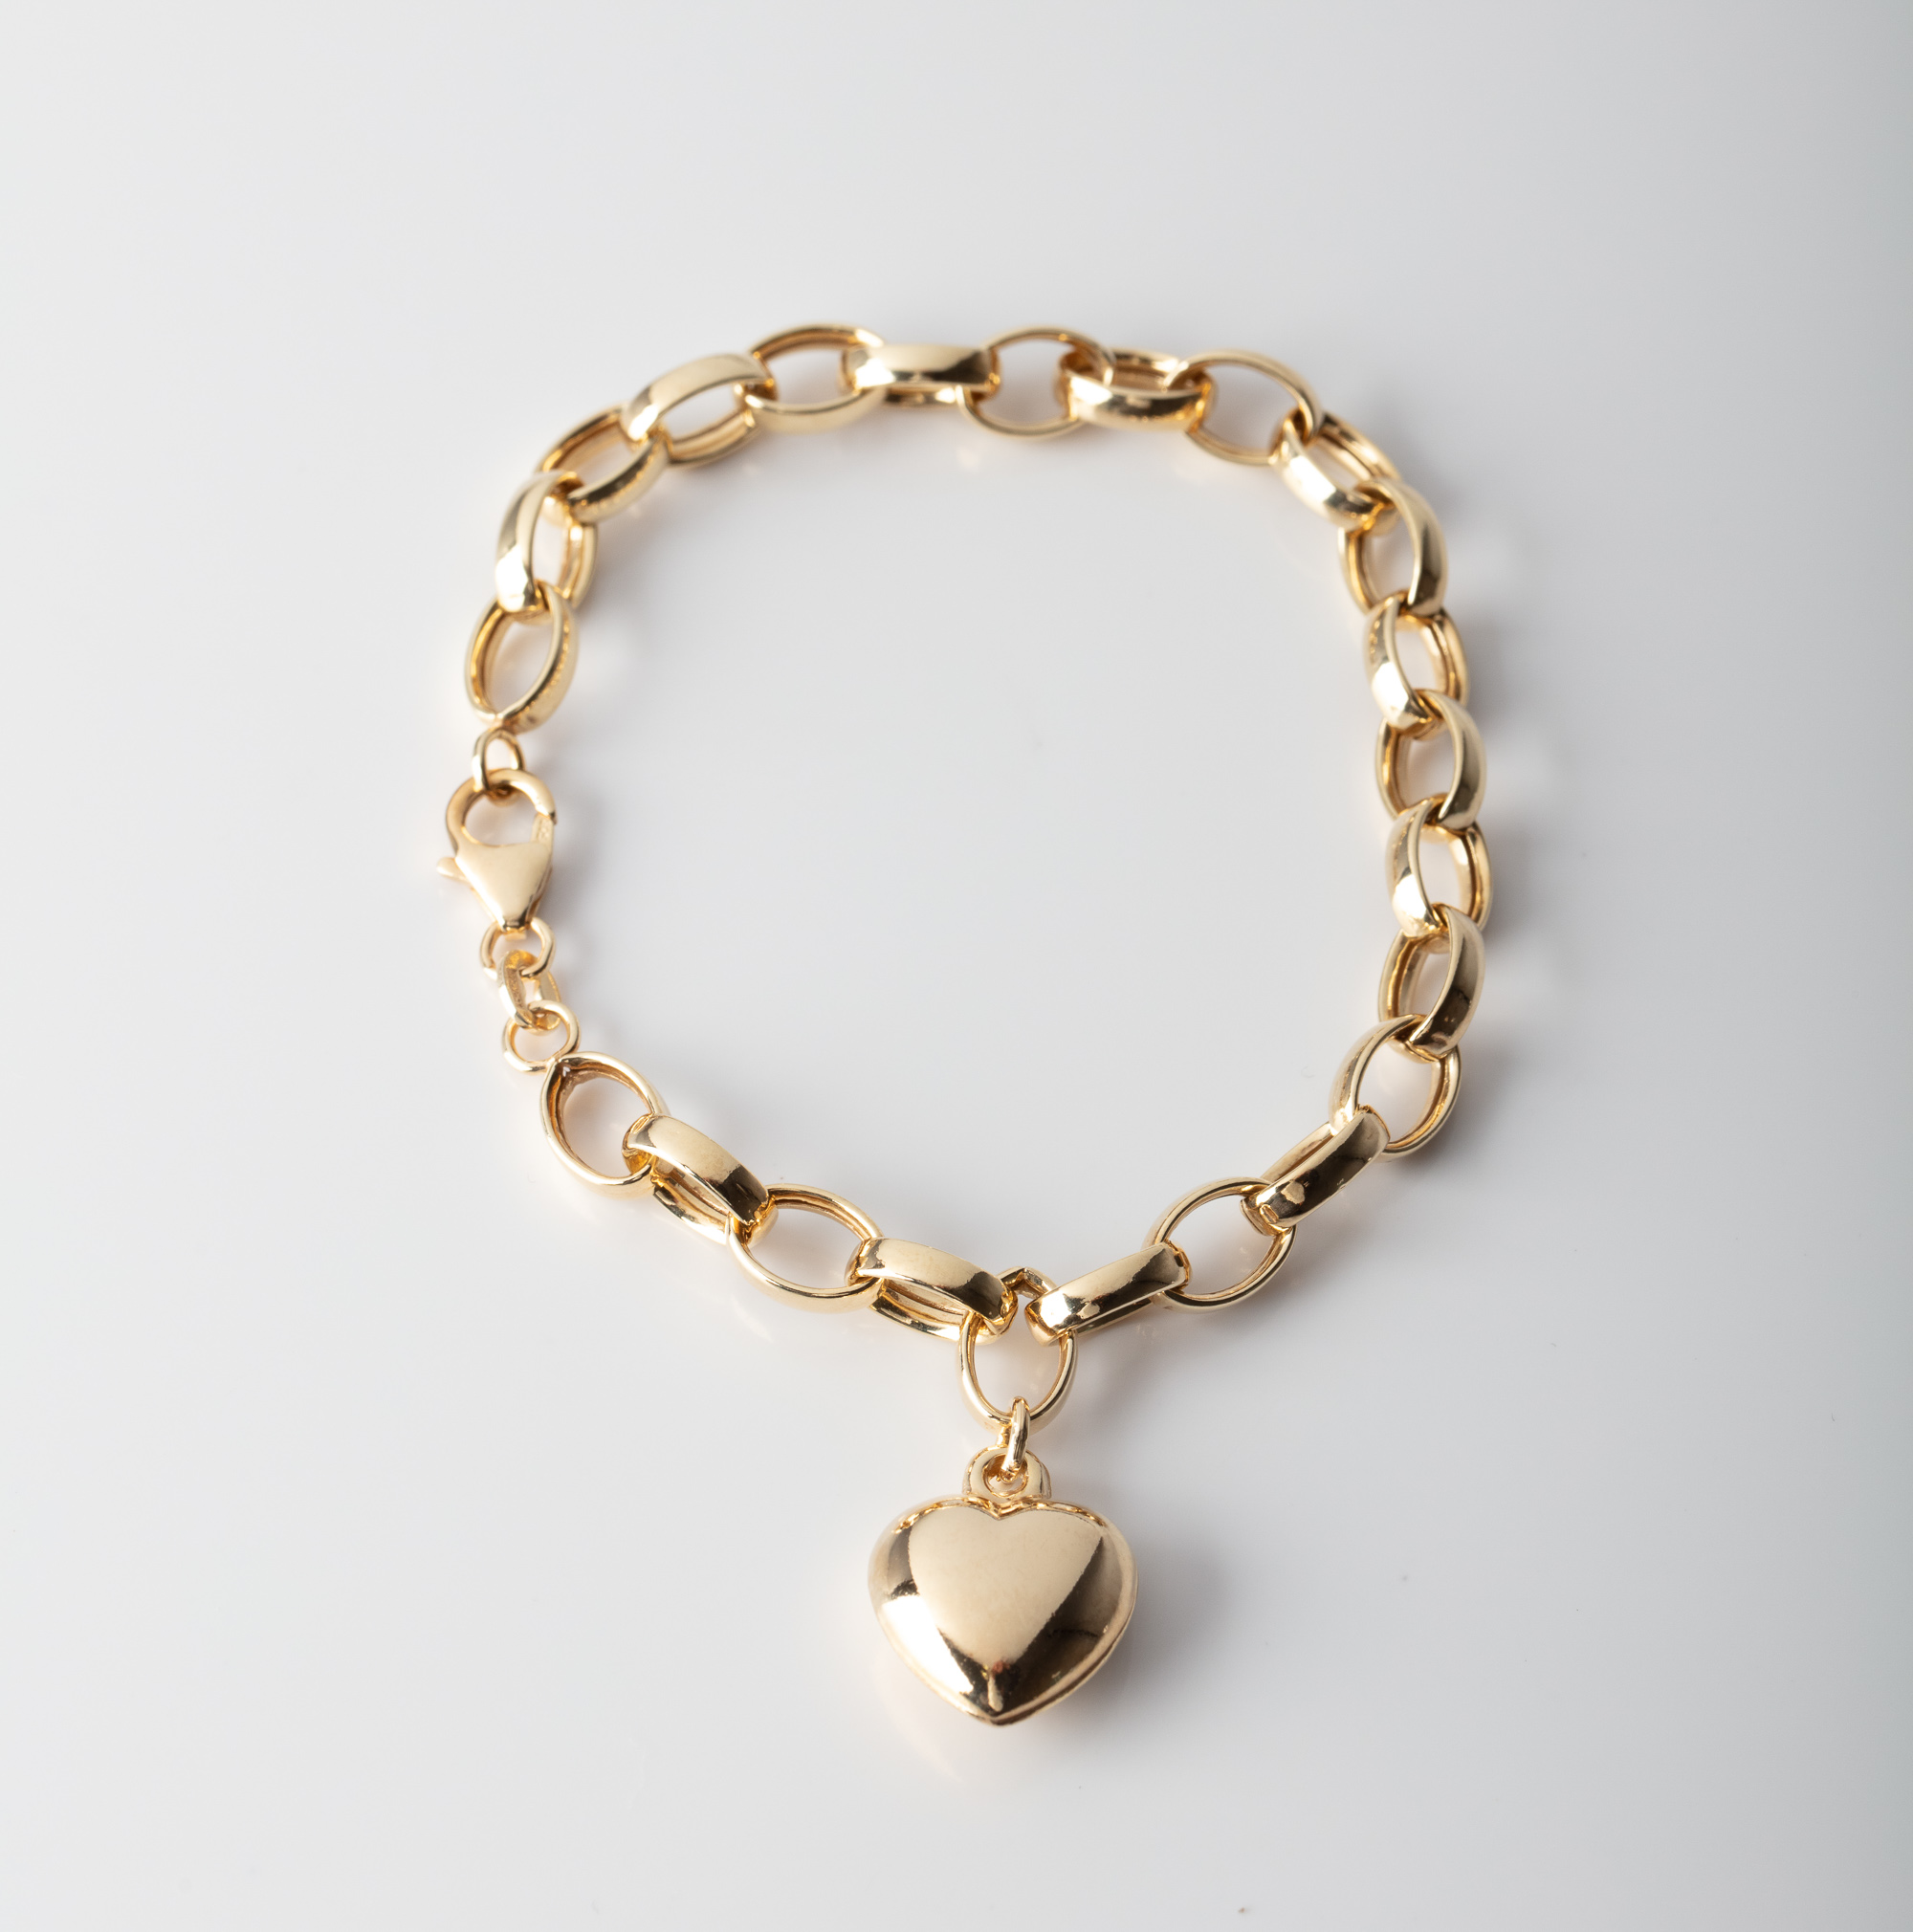 A 9CT GOLD & SILVER BONDED PUFF HEART BRACELET